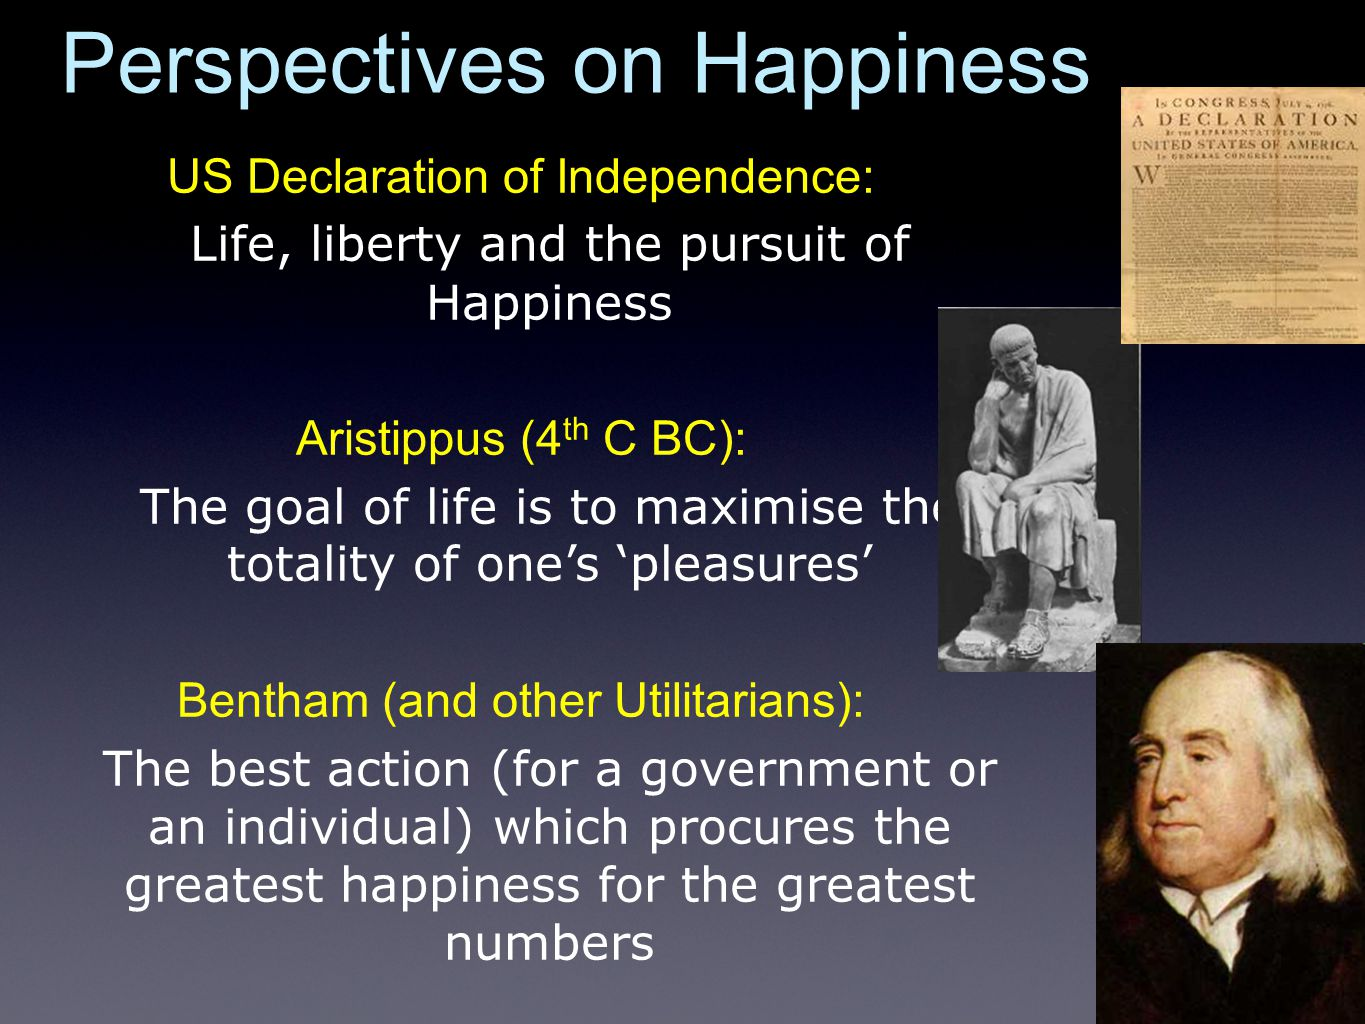 Perspectives on Happiness US Declaration of Independence: Life, liberty and the pursuit of Happiness Aristippus (4 th C BC): The goal of life is to maximise the totality of one's 'pleasures' Bentham (and other Utilitarians): The best action (for a government or an individual) which procures the greatest happiness for the greatest numbers